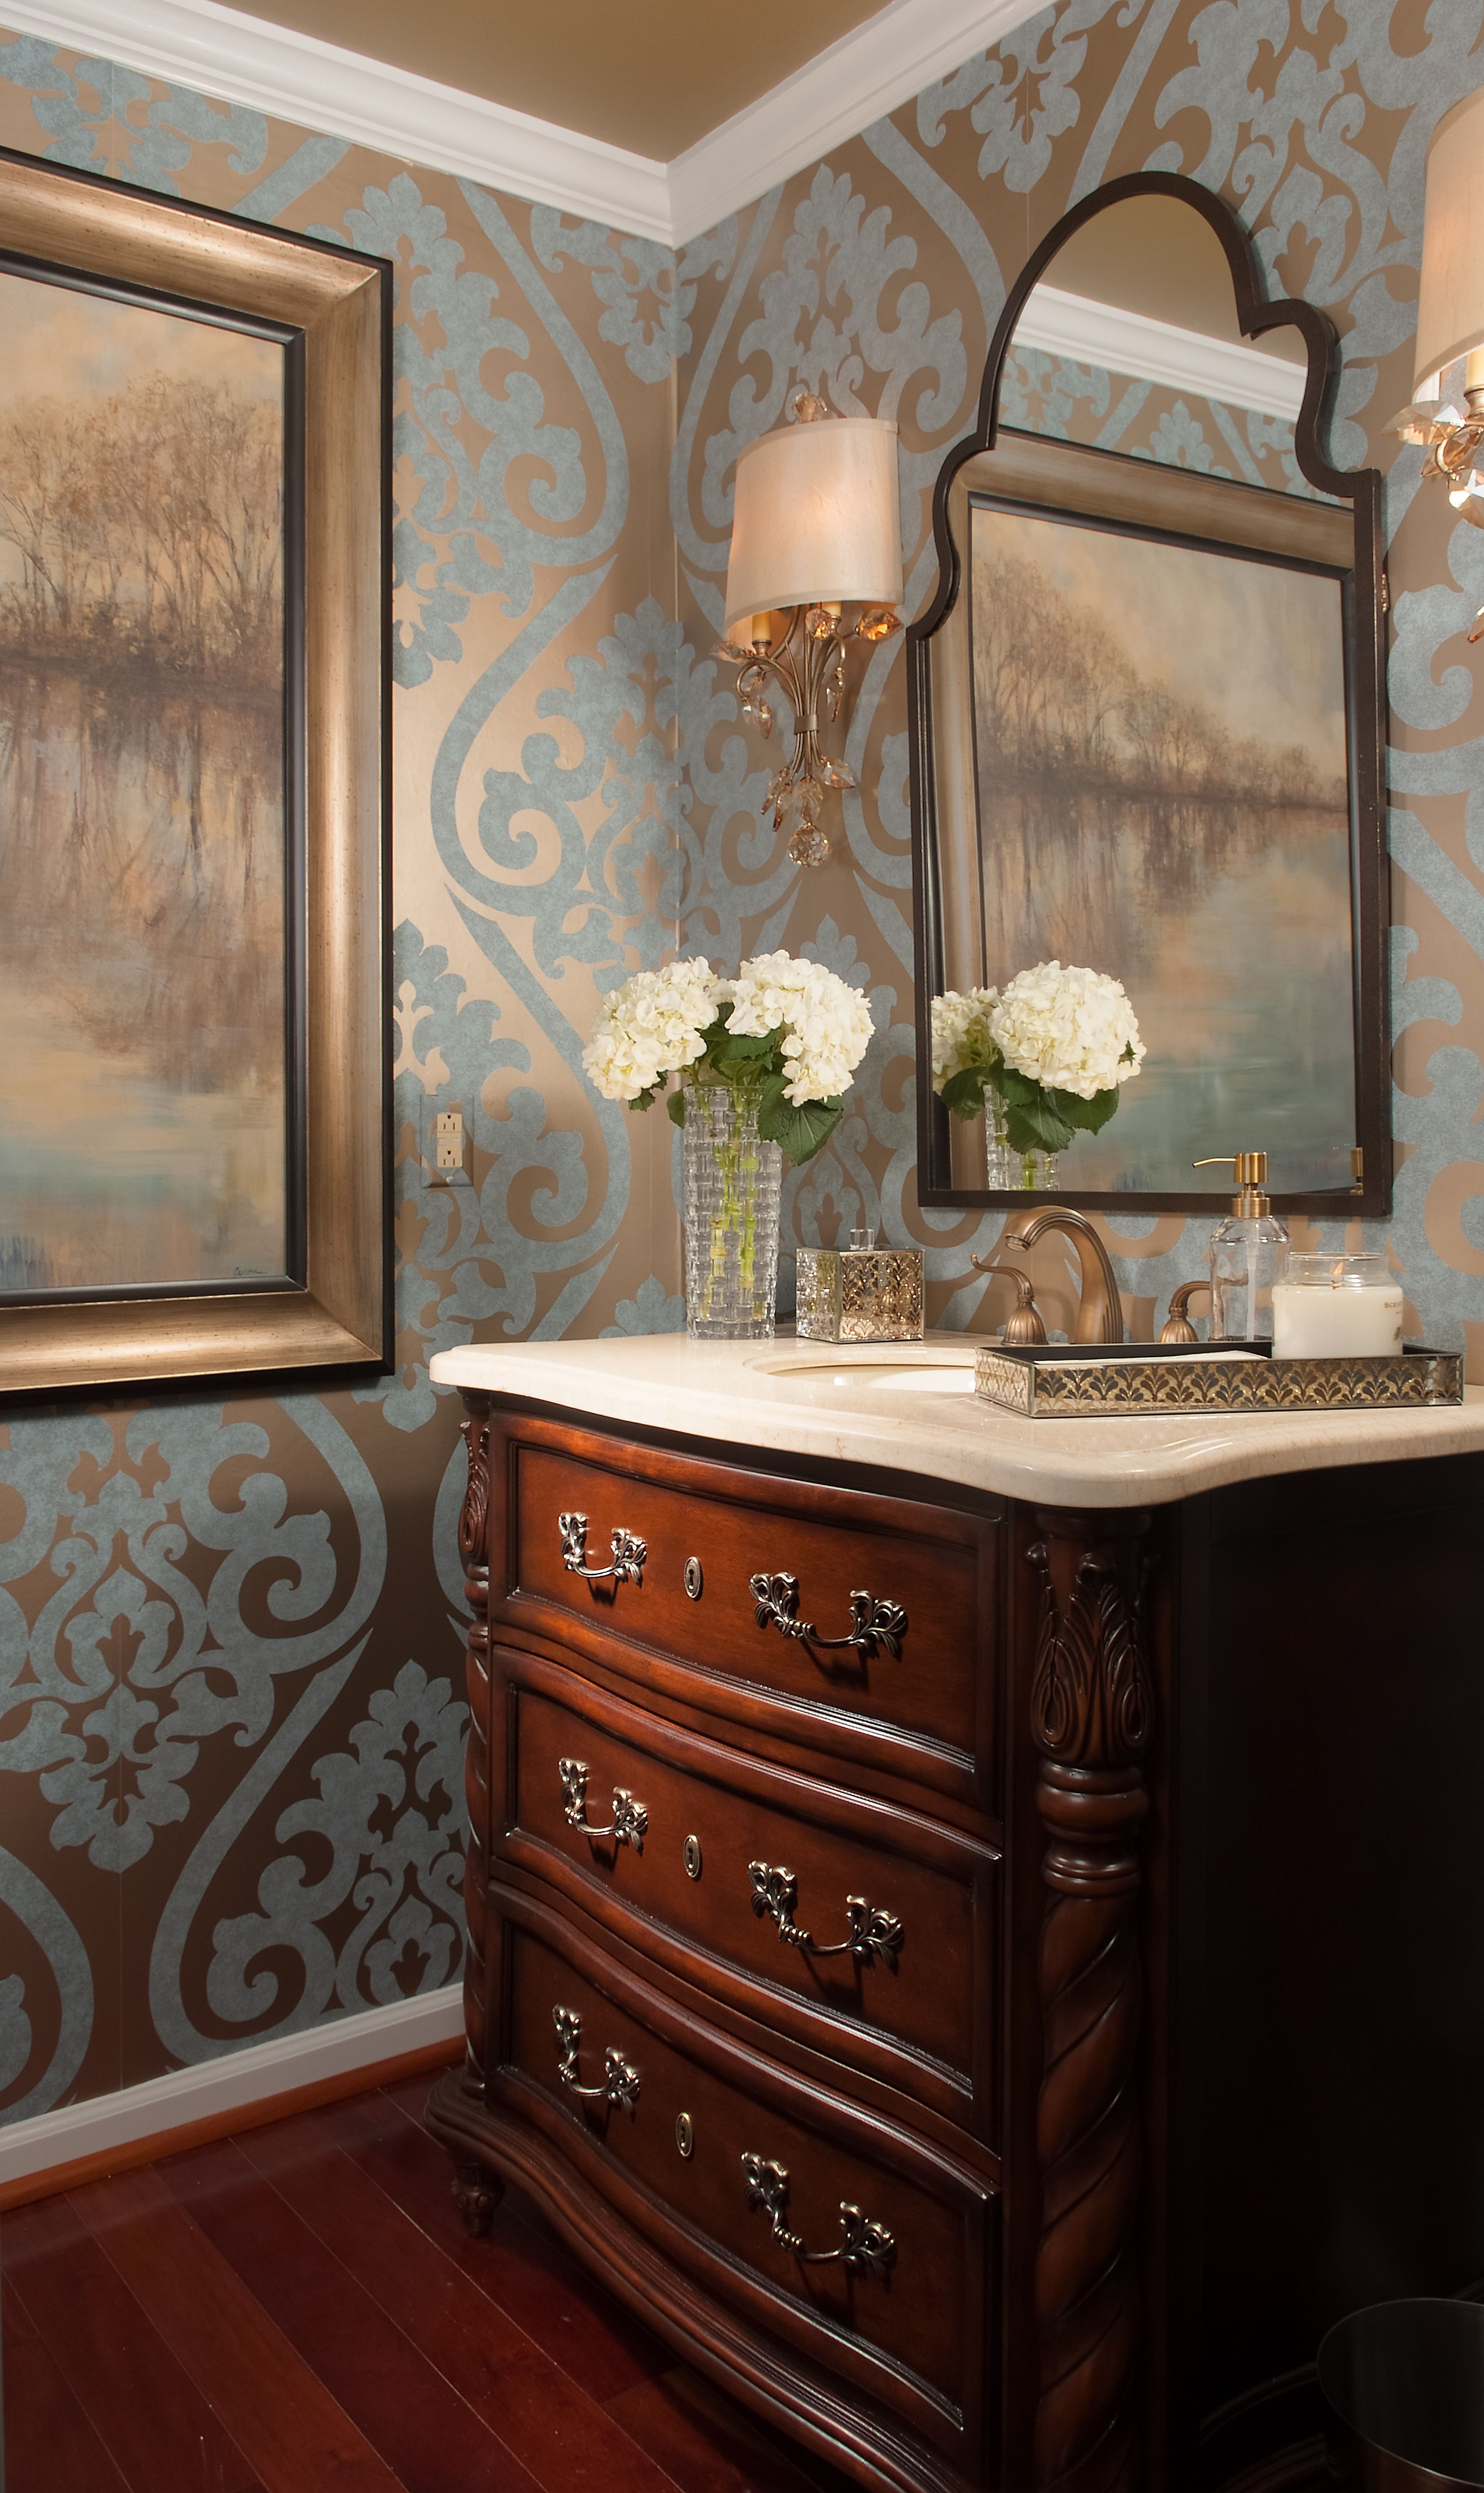 www.decoratingden.com | Happy Nona in 2019 | Powder room ...